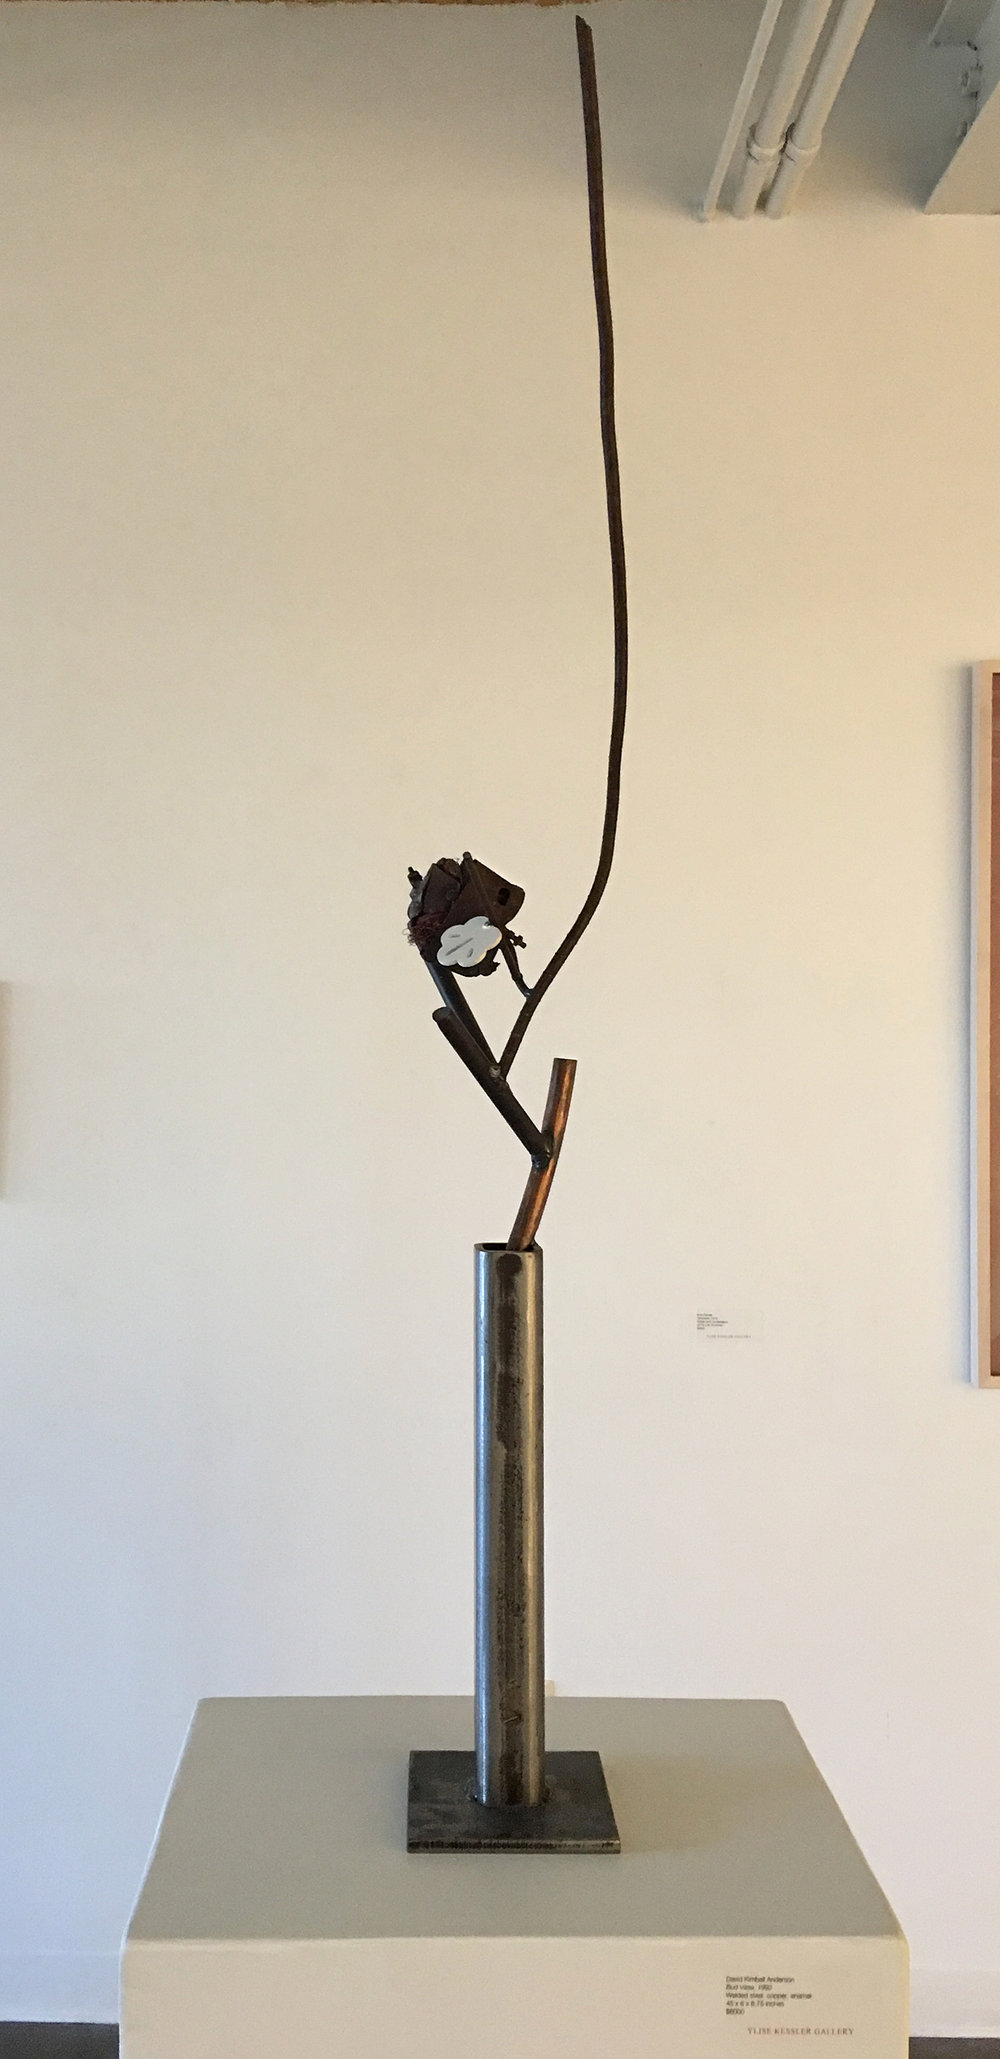 David Kimball Anderson  Bud Vase, 1992  Welded steel, copper, enamel 50 x 8.25 x 7 inches